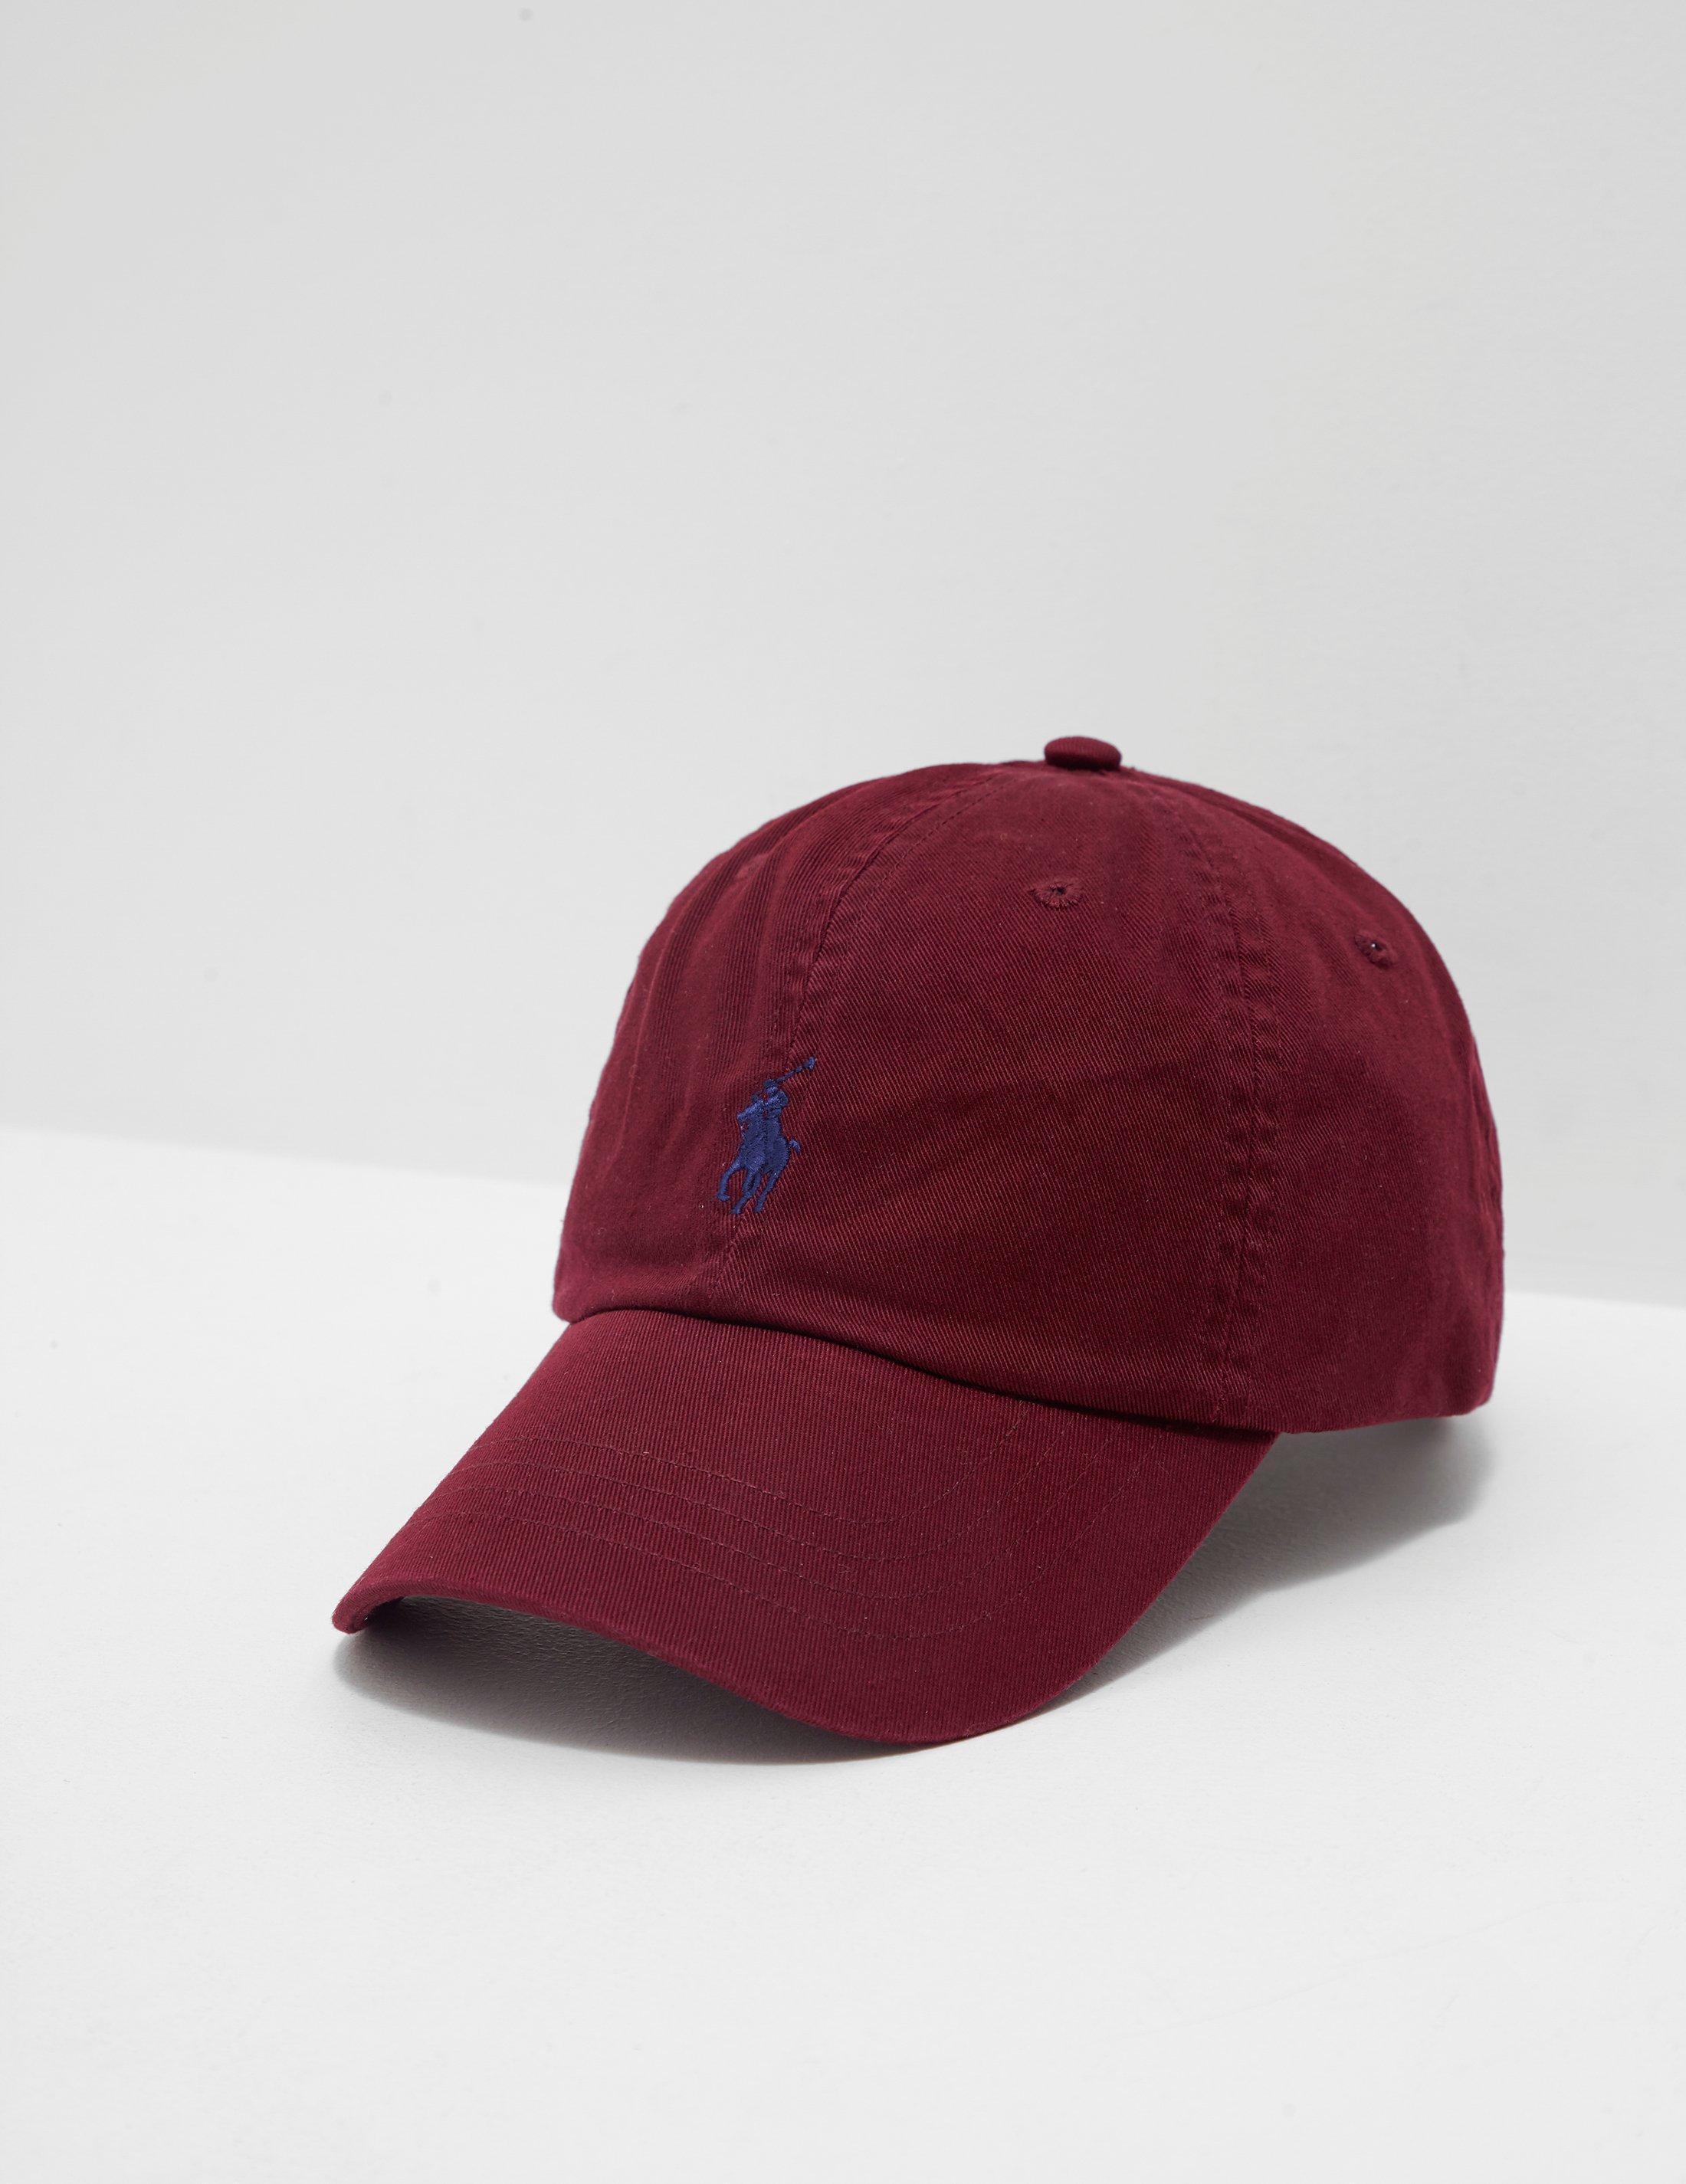 1bd8025a Lyst - Polo Ralph Lauren Classic Cap Red in Red for Men